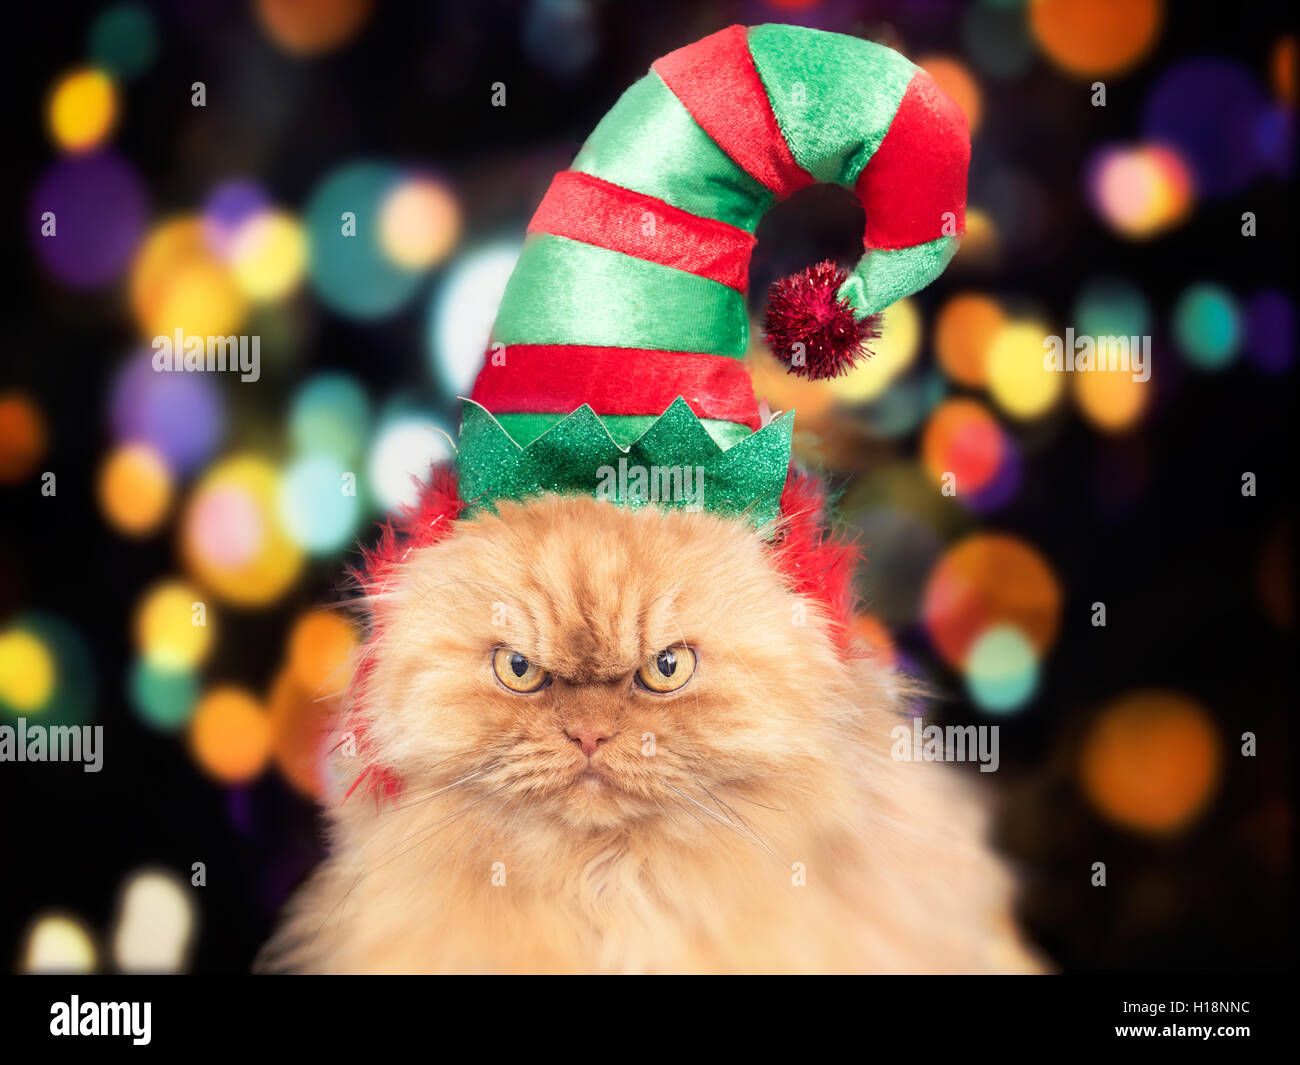 Gatto persiano indossando holiday elf hat Immagini Stock